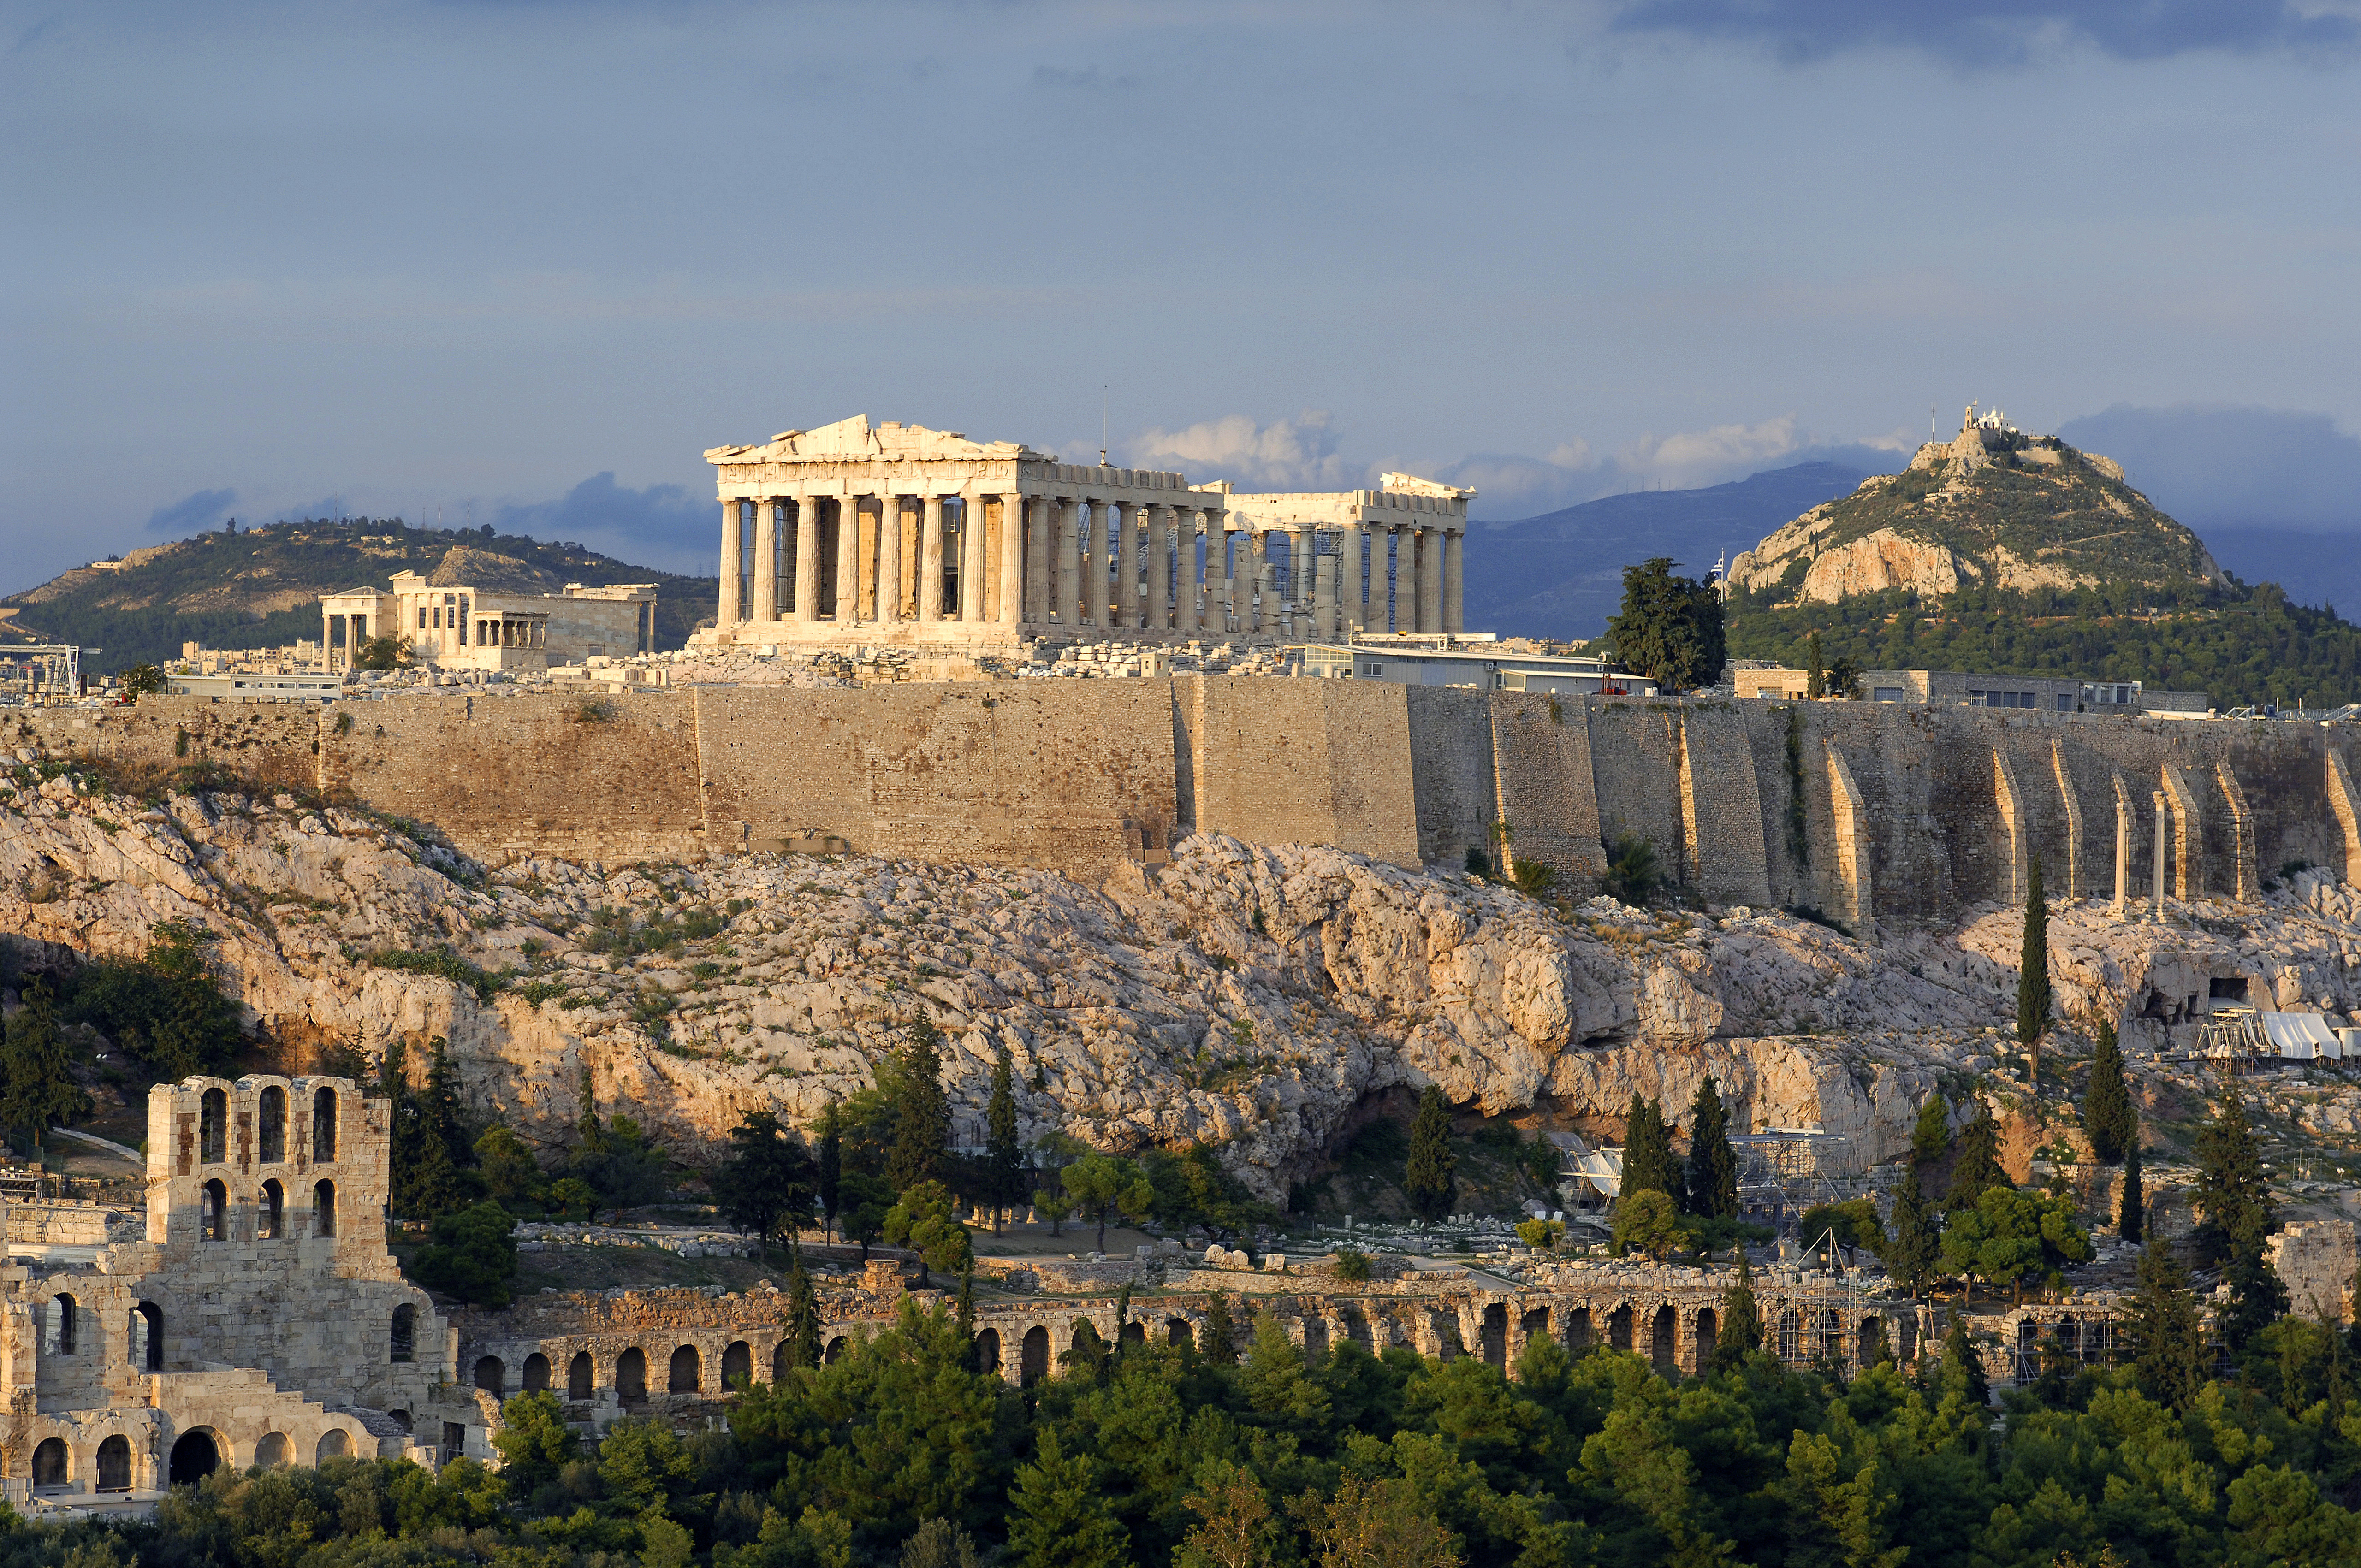 an introduction to the history of the athenian acropolis Introduction the parthenon initiated the periclean building program on the athenian acropolis yet considering its long history of use.